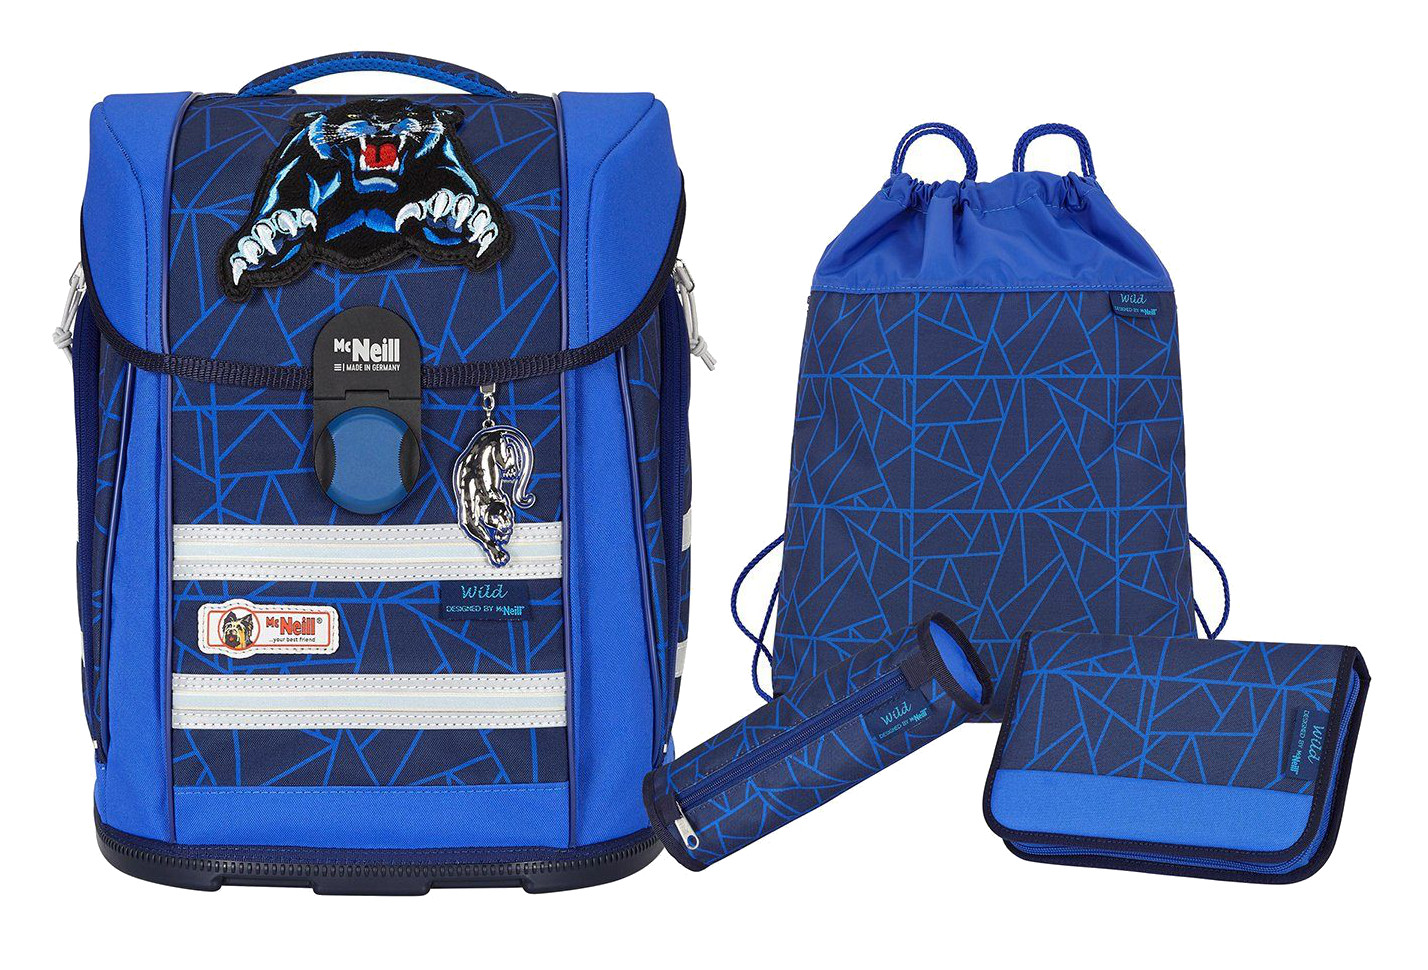 McNeill 'Wild' Schulrucksackset Ergo Light Primero Mc Light 4tlg.